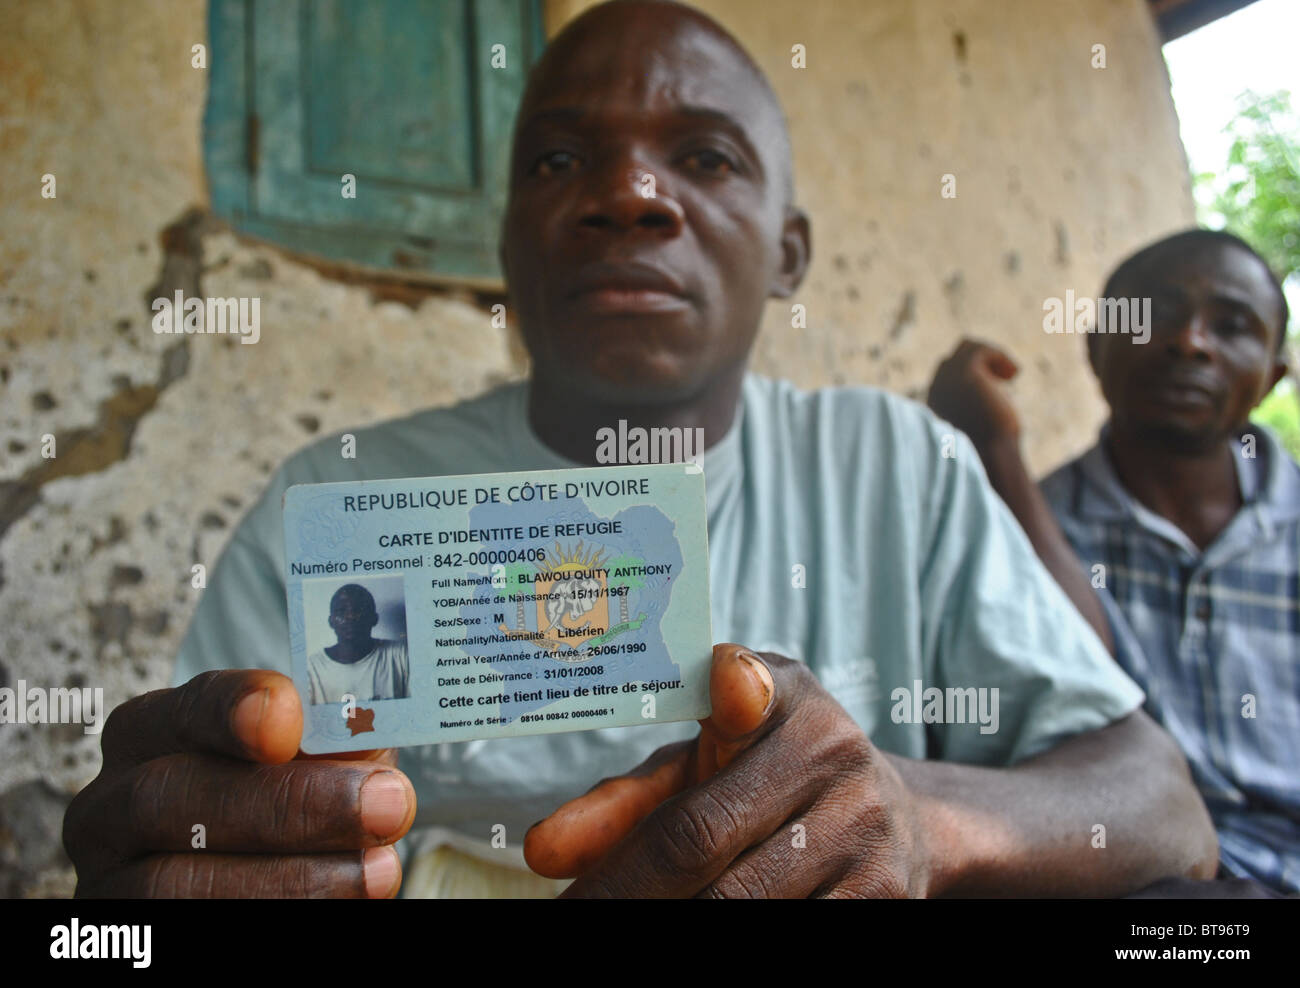 Liberian refugees display their refugee identity cards in Tabou, Ivory Coast, West Africa - Stock Image